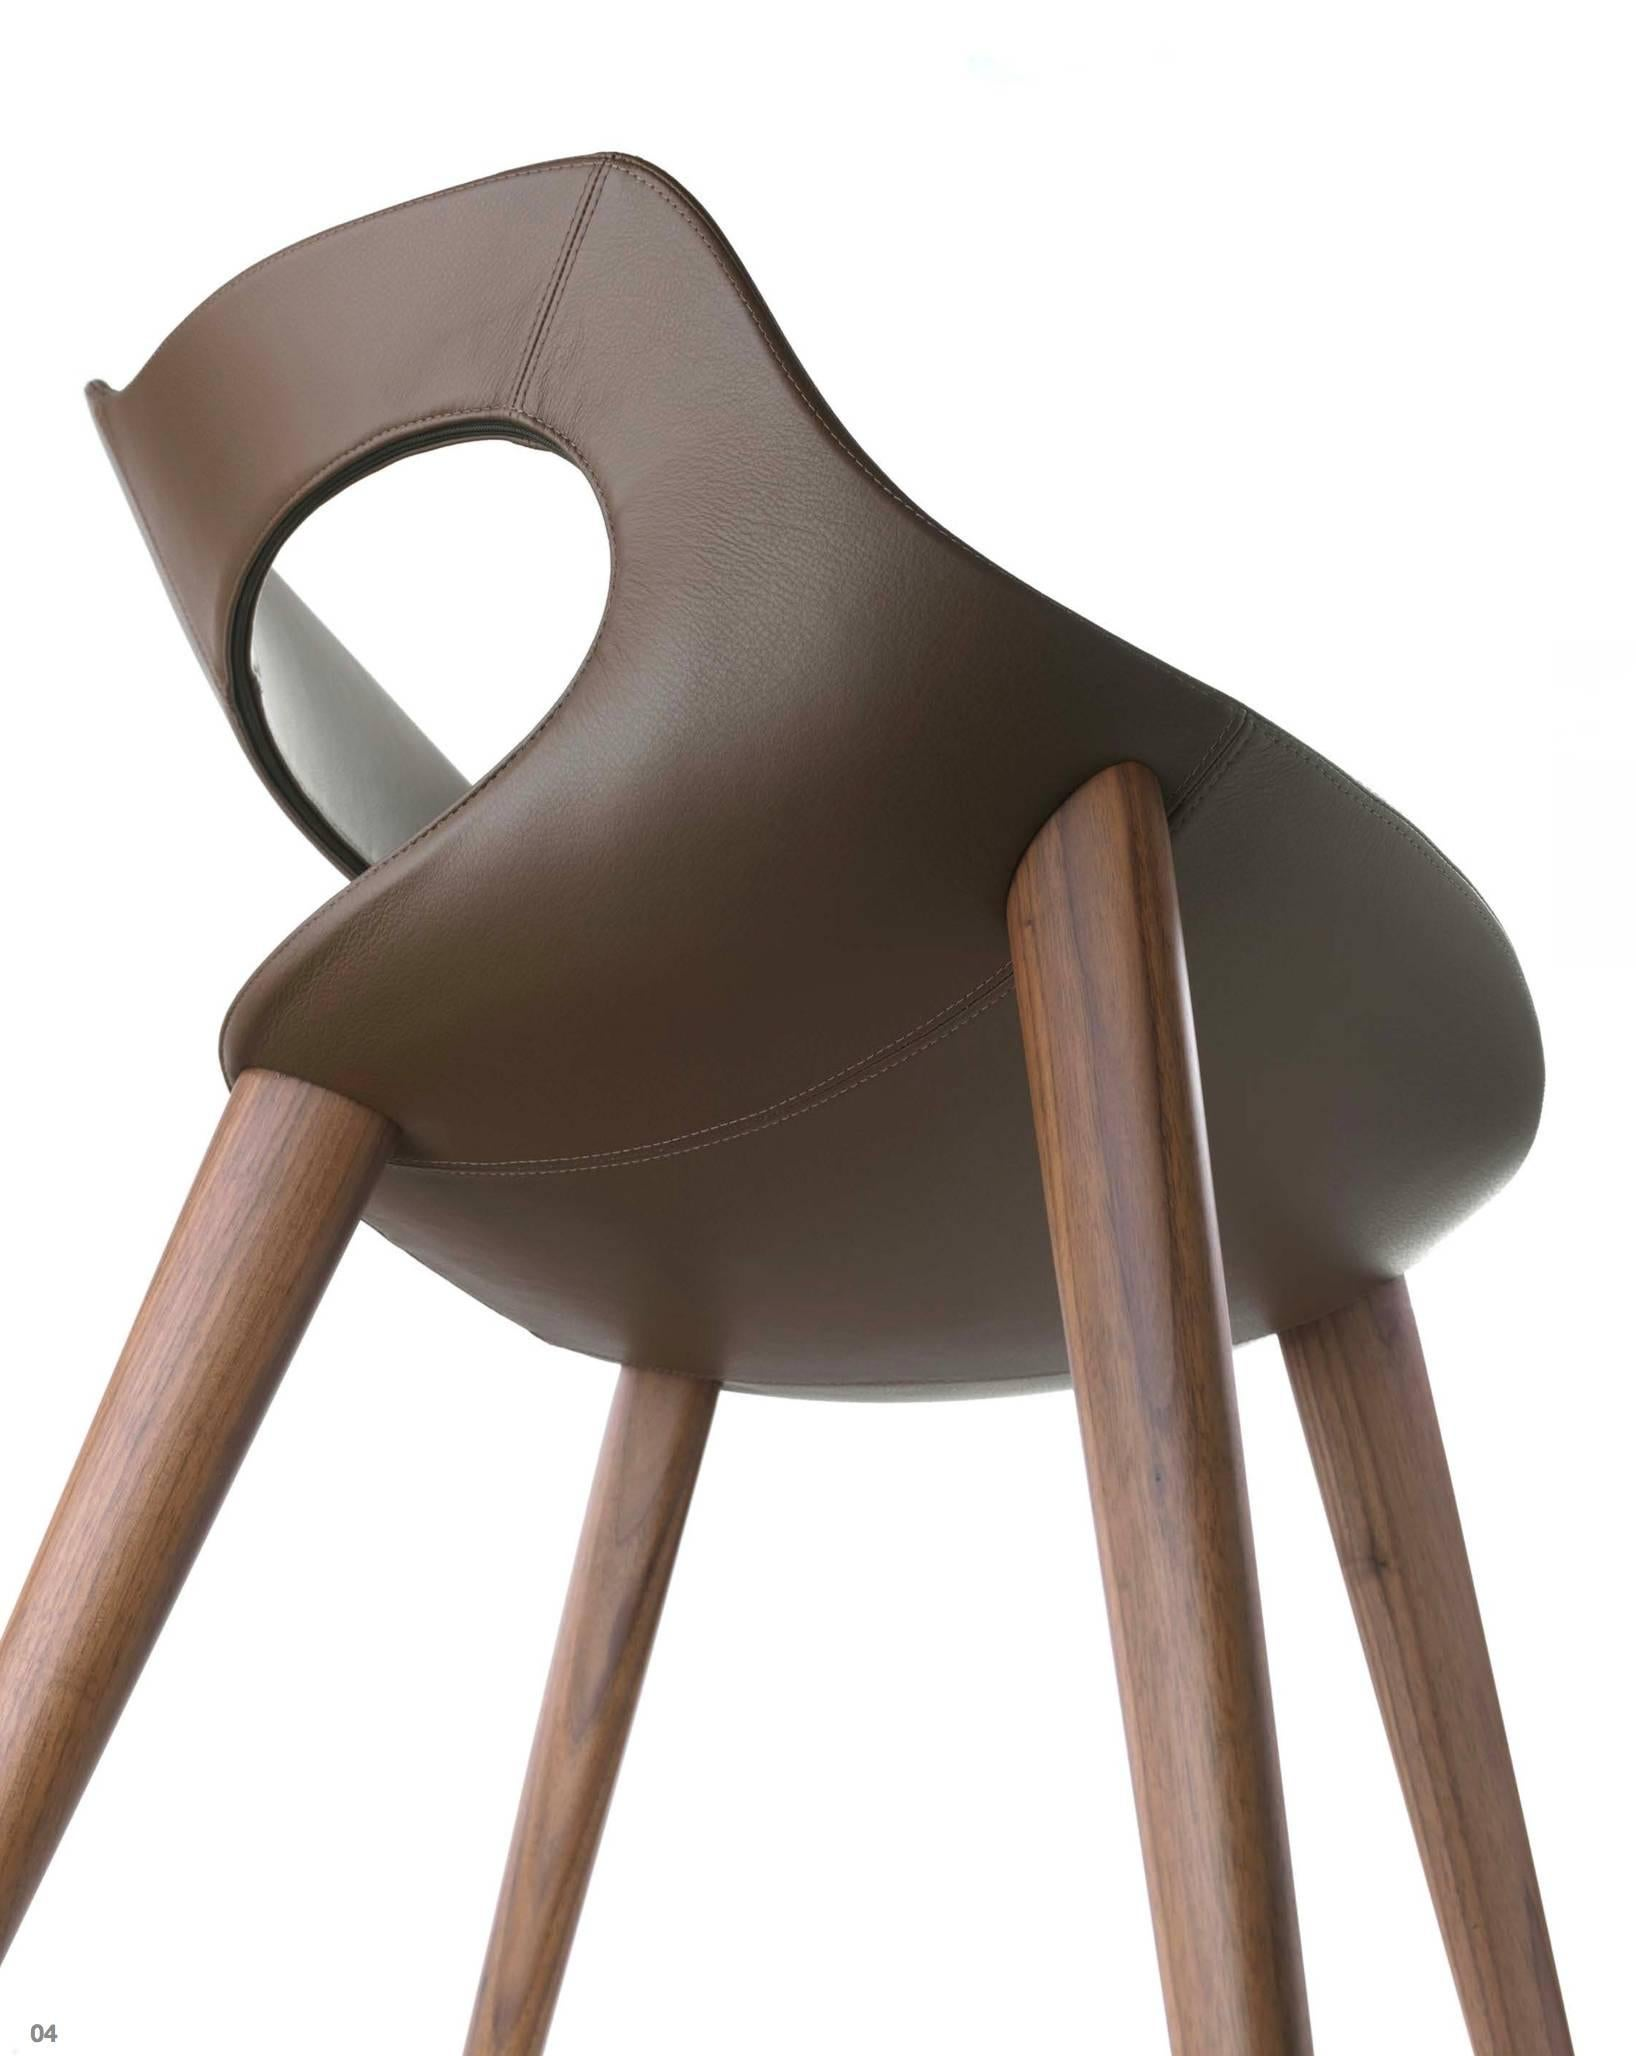 Italian Contemporary Dining Chair Made In Italy, Leather For Sale At 1stdibs